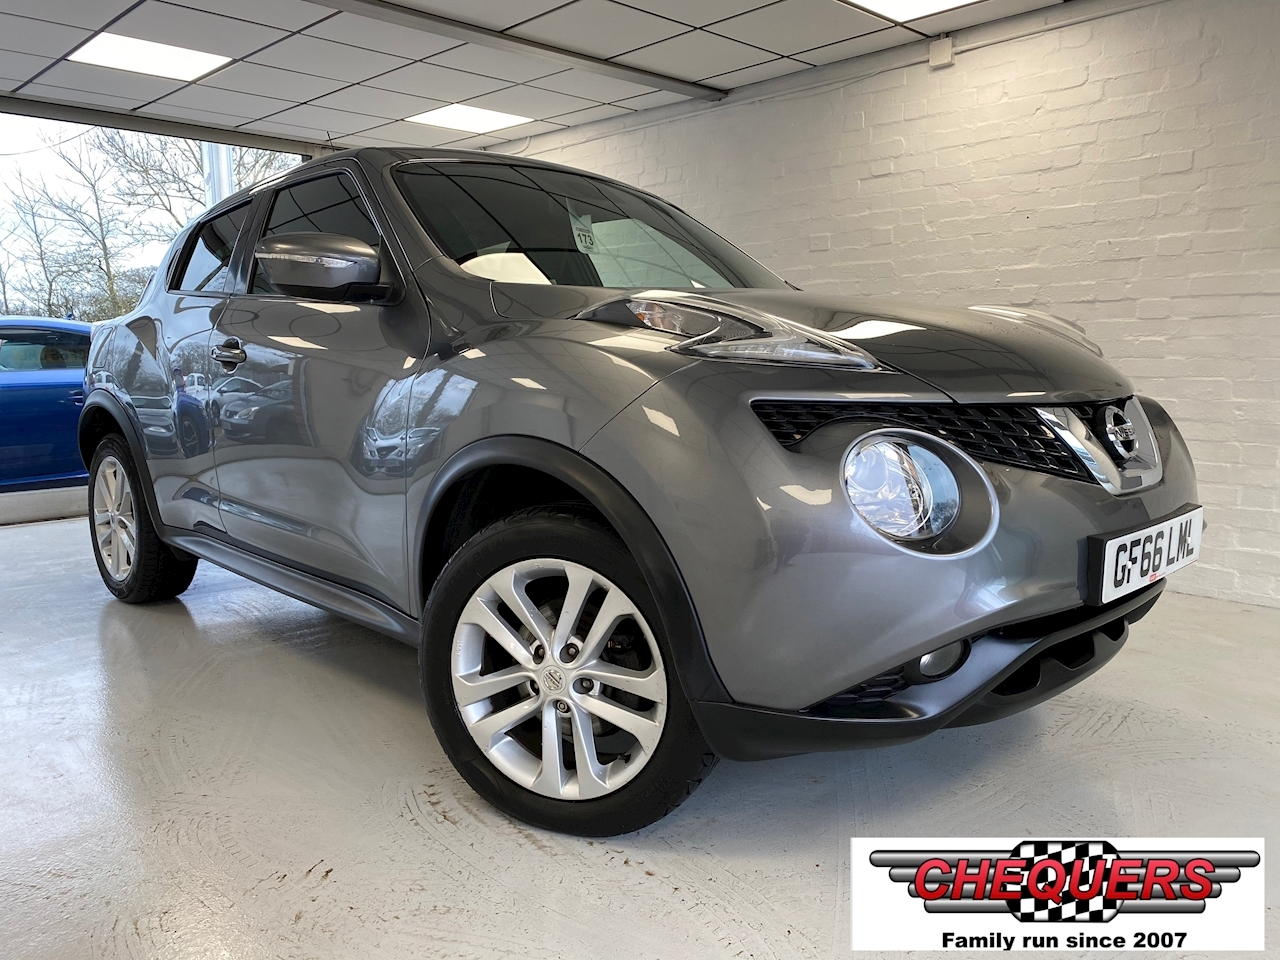 Nissan 1.2 DIG-T N-Connecta SUV 5dr Petrol (s/s) (115 ps)